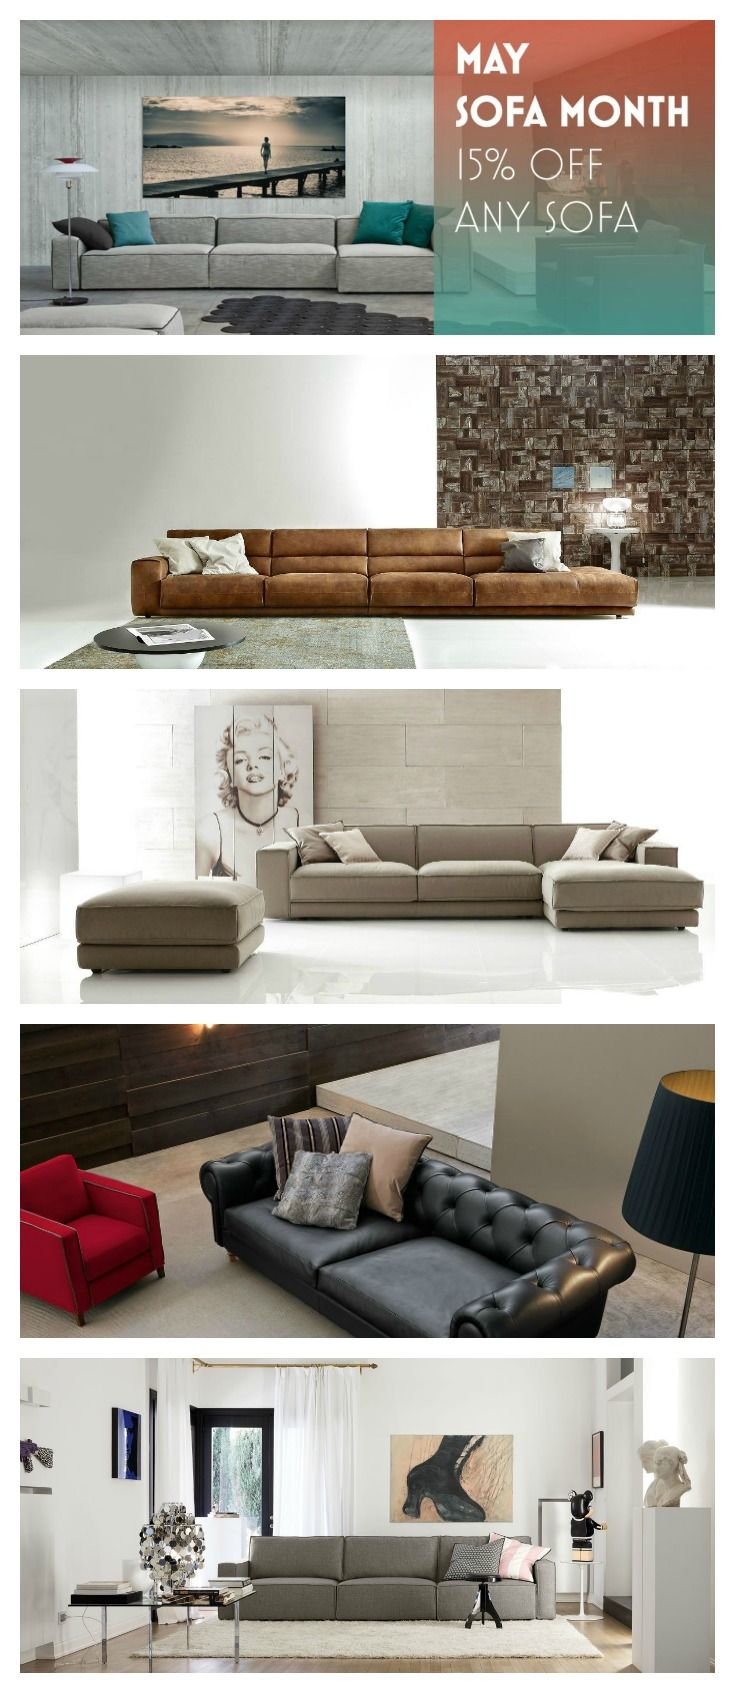 Nice Sofa Sale Happening Now At Off The Sofa Of Your Choice. Quality Leathers  And Top Of The Line Upholstery.